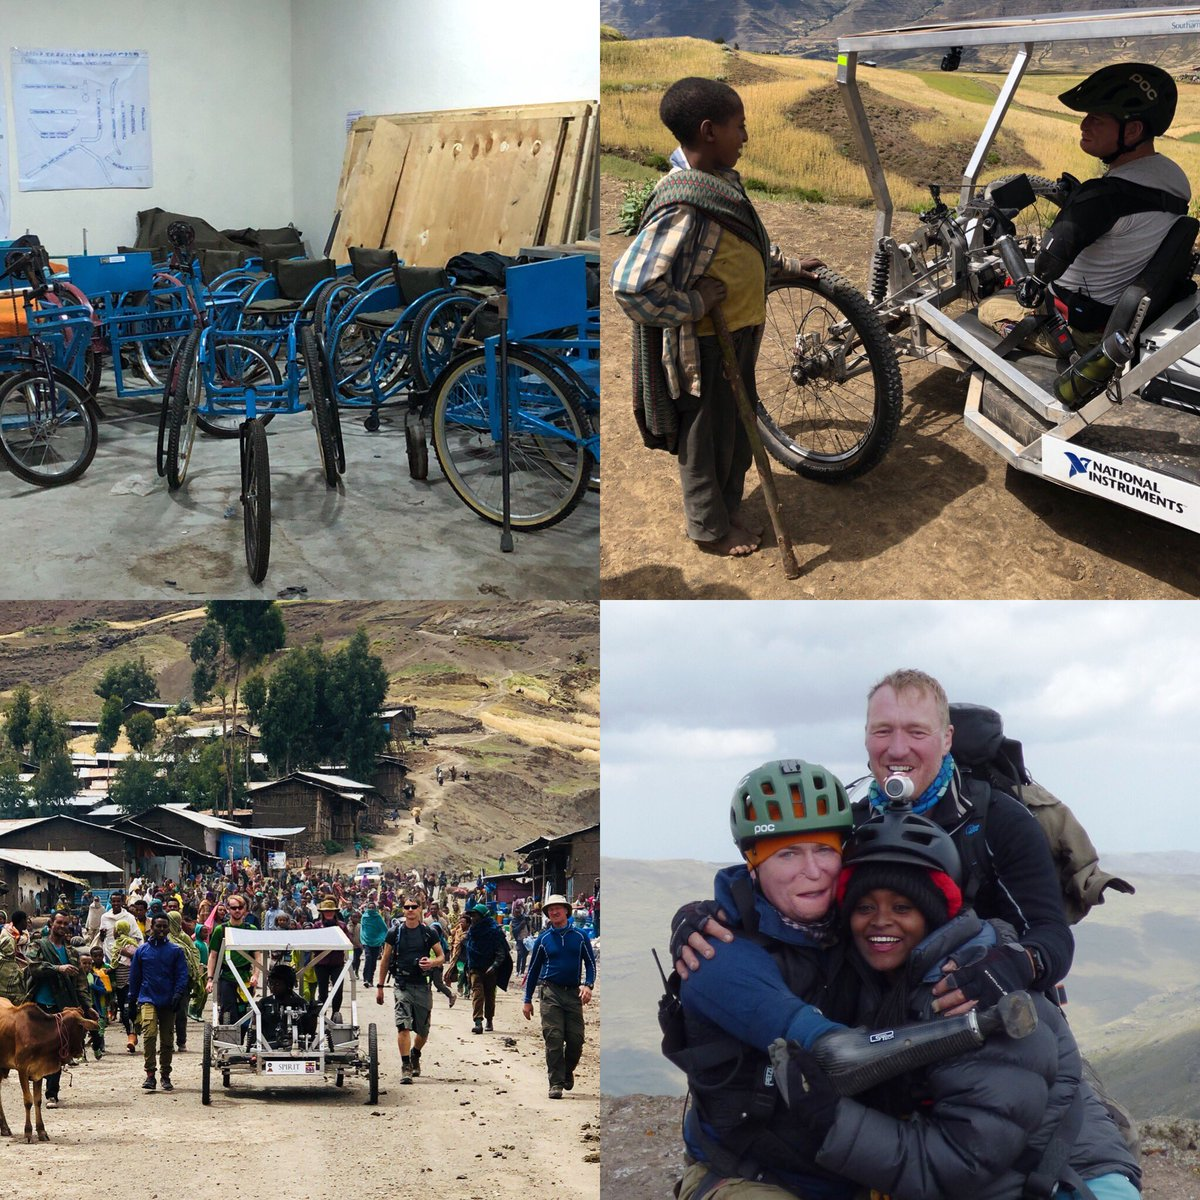 Never let your disability get in the way of doing some pretty incredible stuff with even more incredible people. To all who supported 🙏 @Belstaff @TesfaTours @unisouthampton @earlyriderbikes @EthioEmbassyUK @hlafilms @NIglobal @PensionCorp #TheWildWheelchairsProject